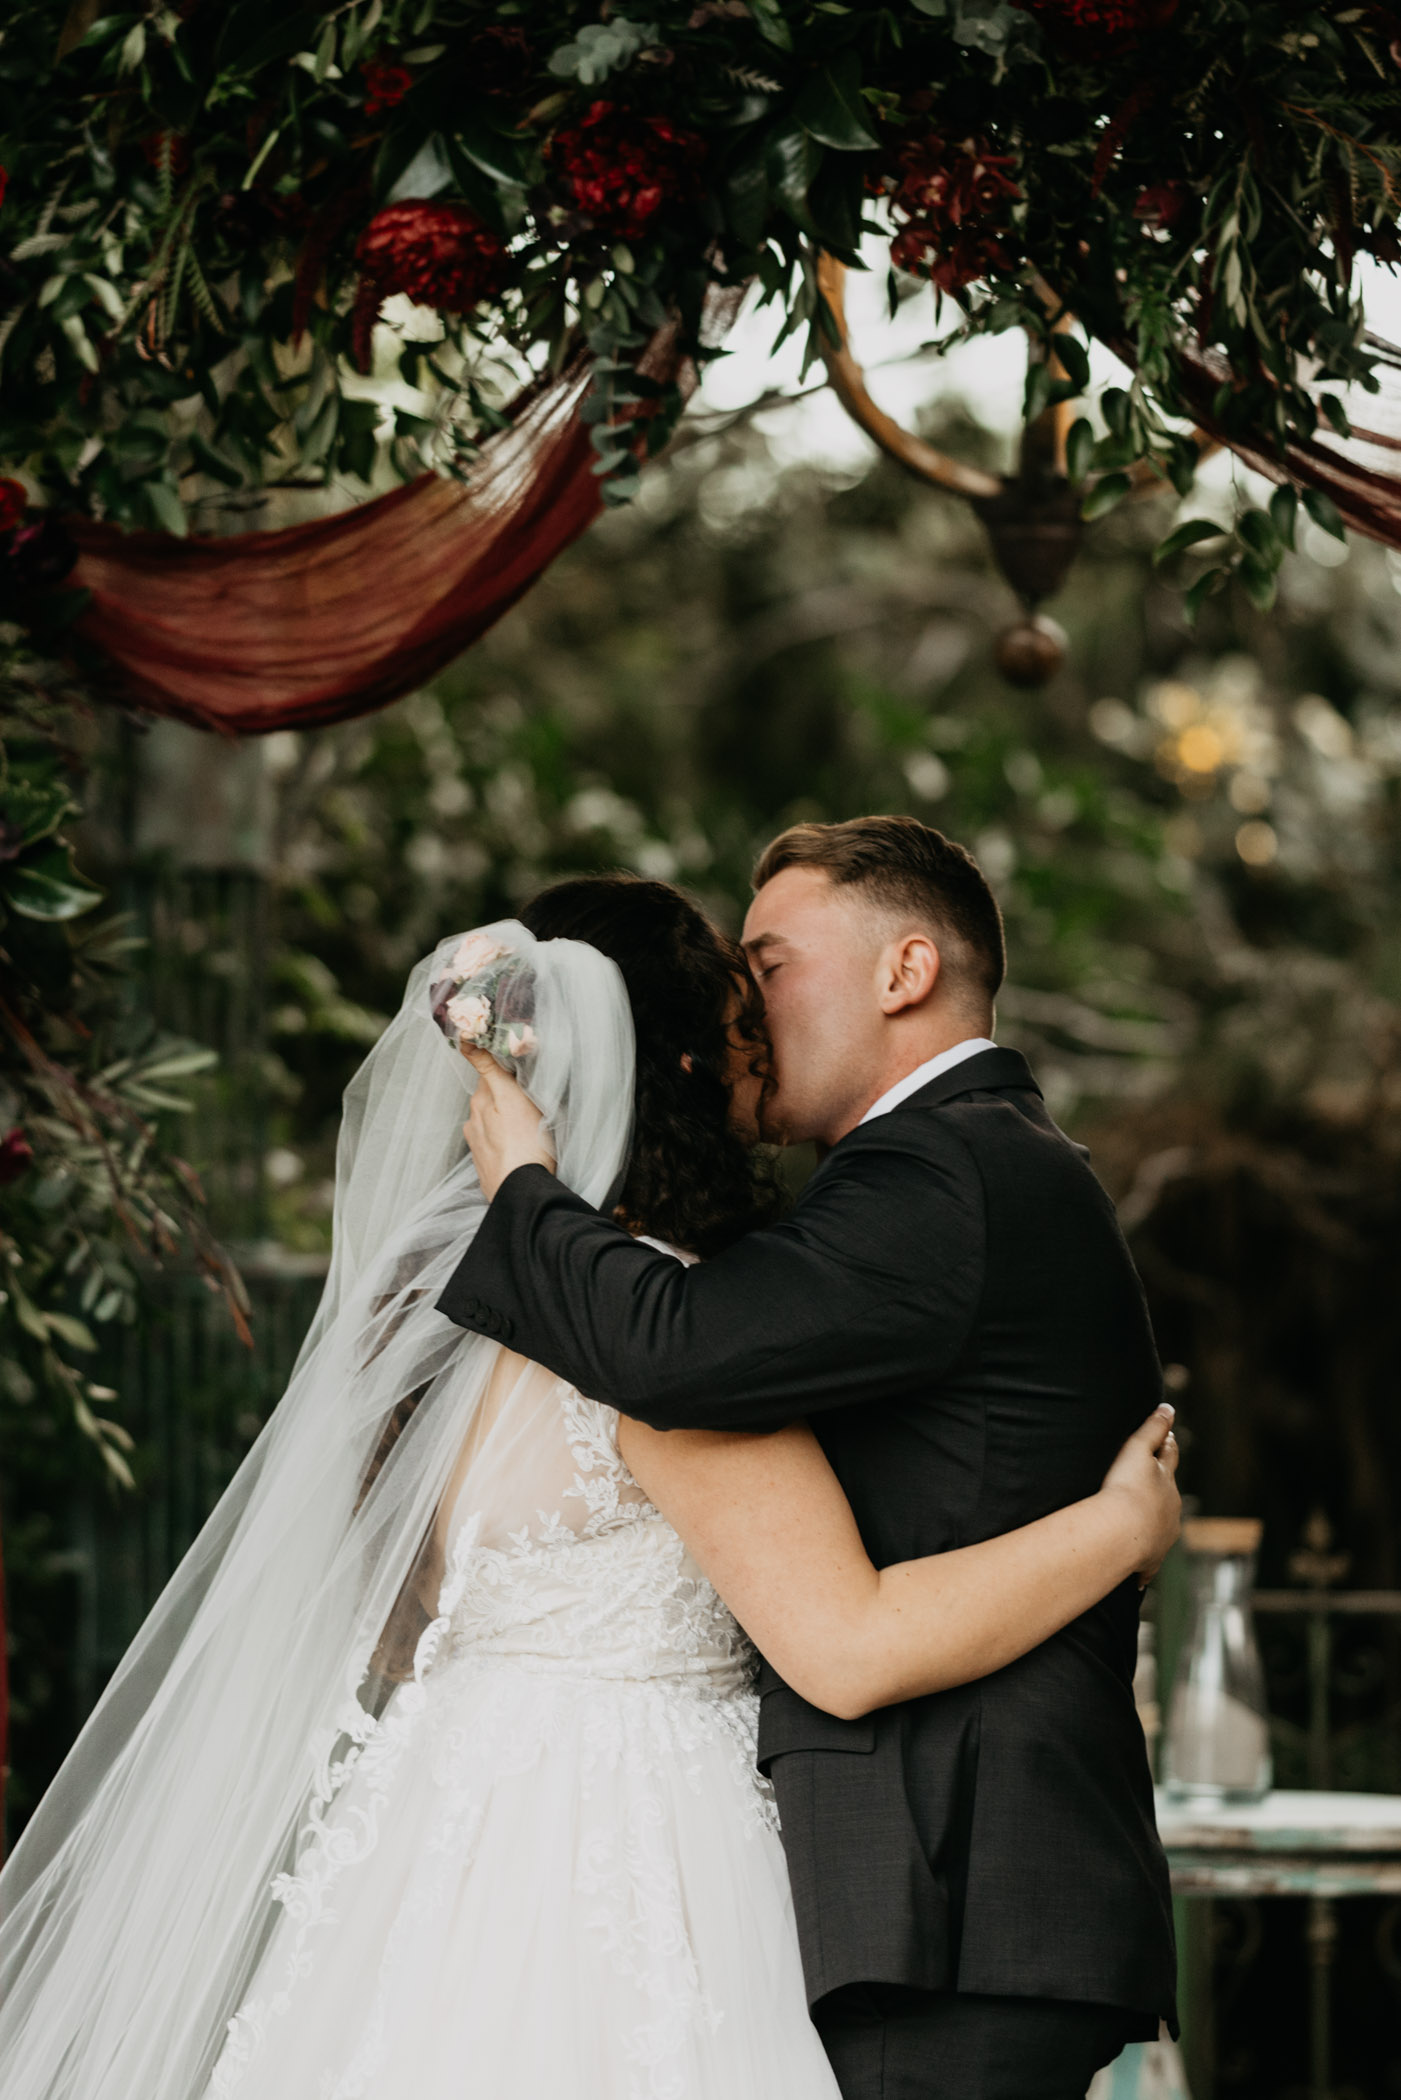 Bride and groom kissing for the first time on their wedding day